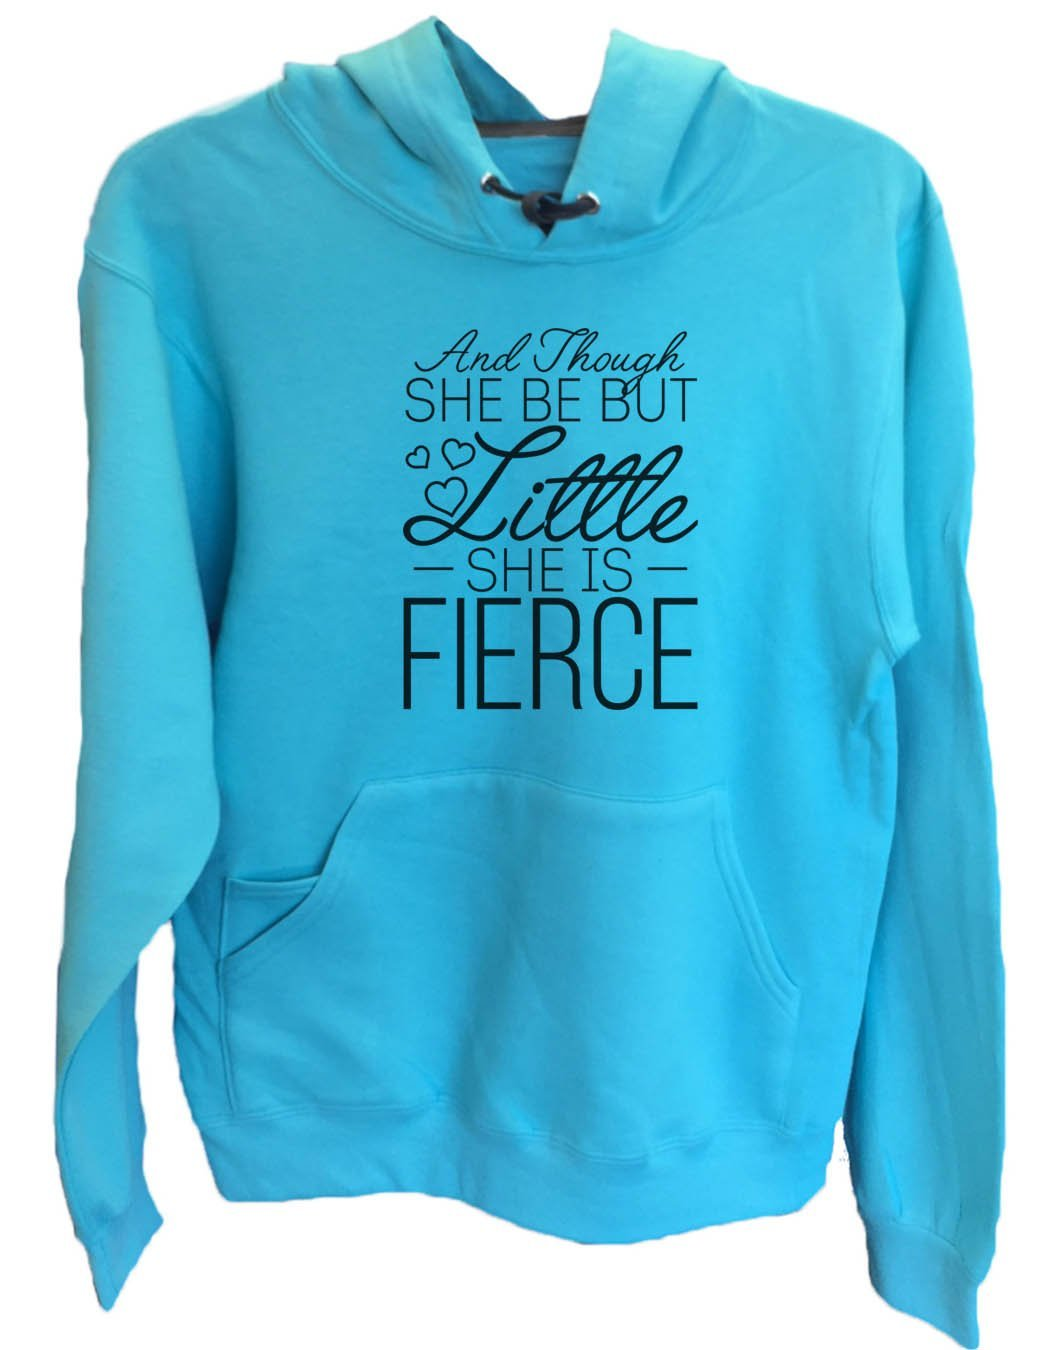 UNISEX HOODIE - And Though She Be But Little She Is Fierce - FUNNY MENS AND WOMENS HOODED SWEATSHIRTS - 2144 Funny Shirt Small / Turquoise